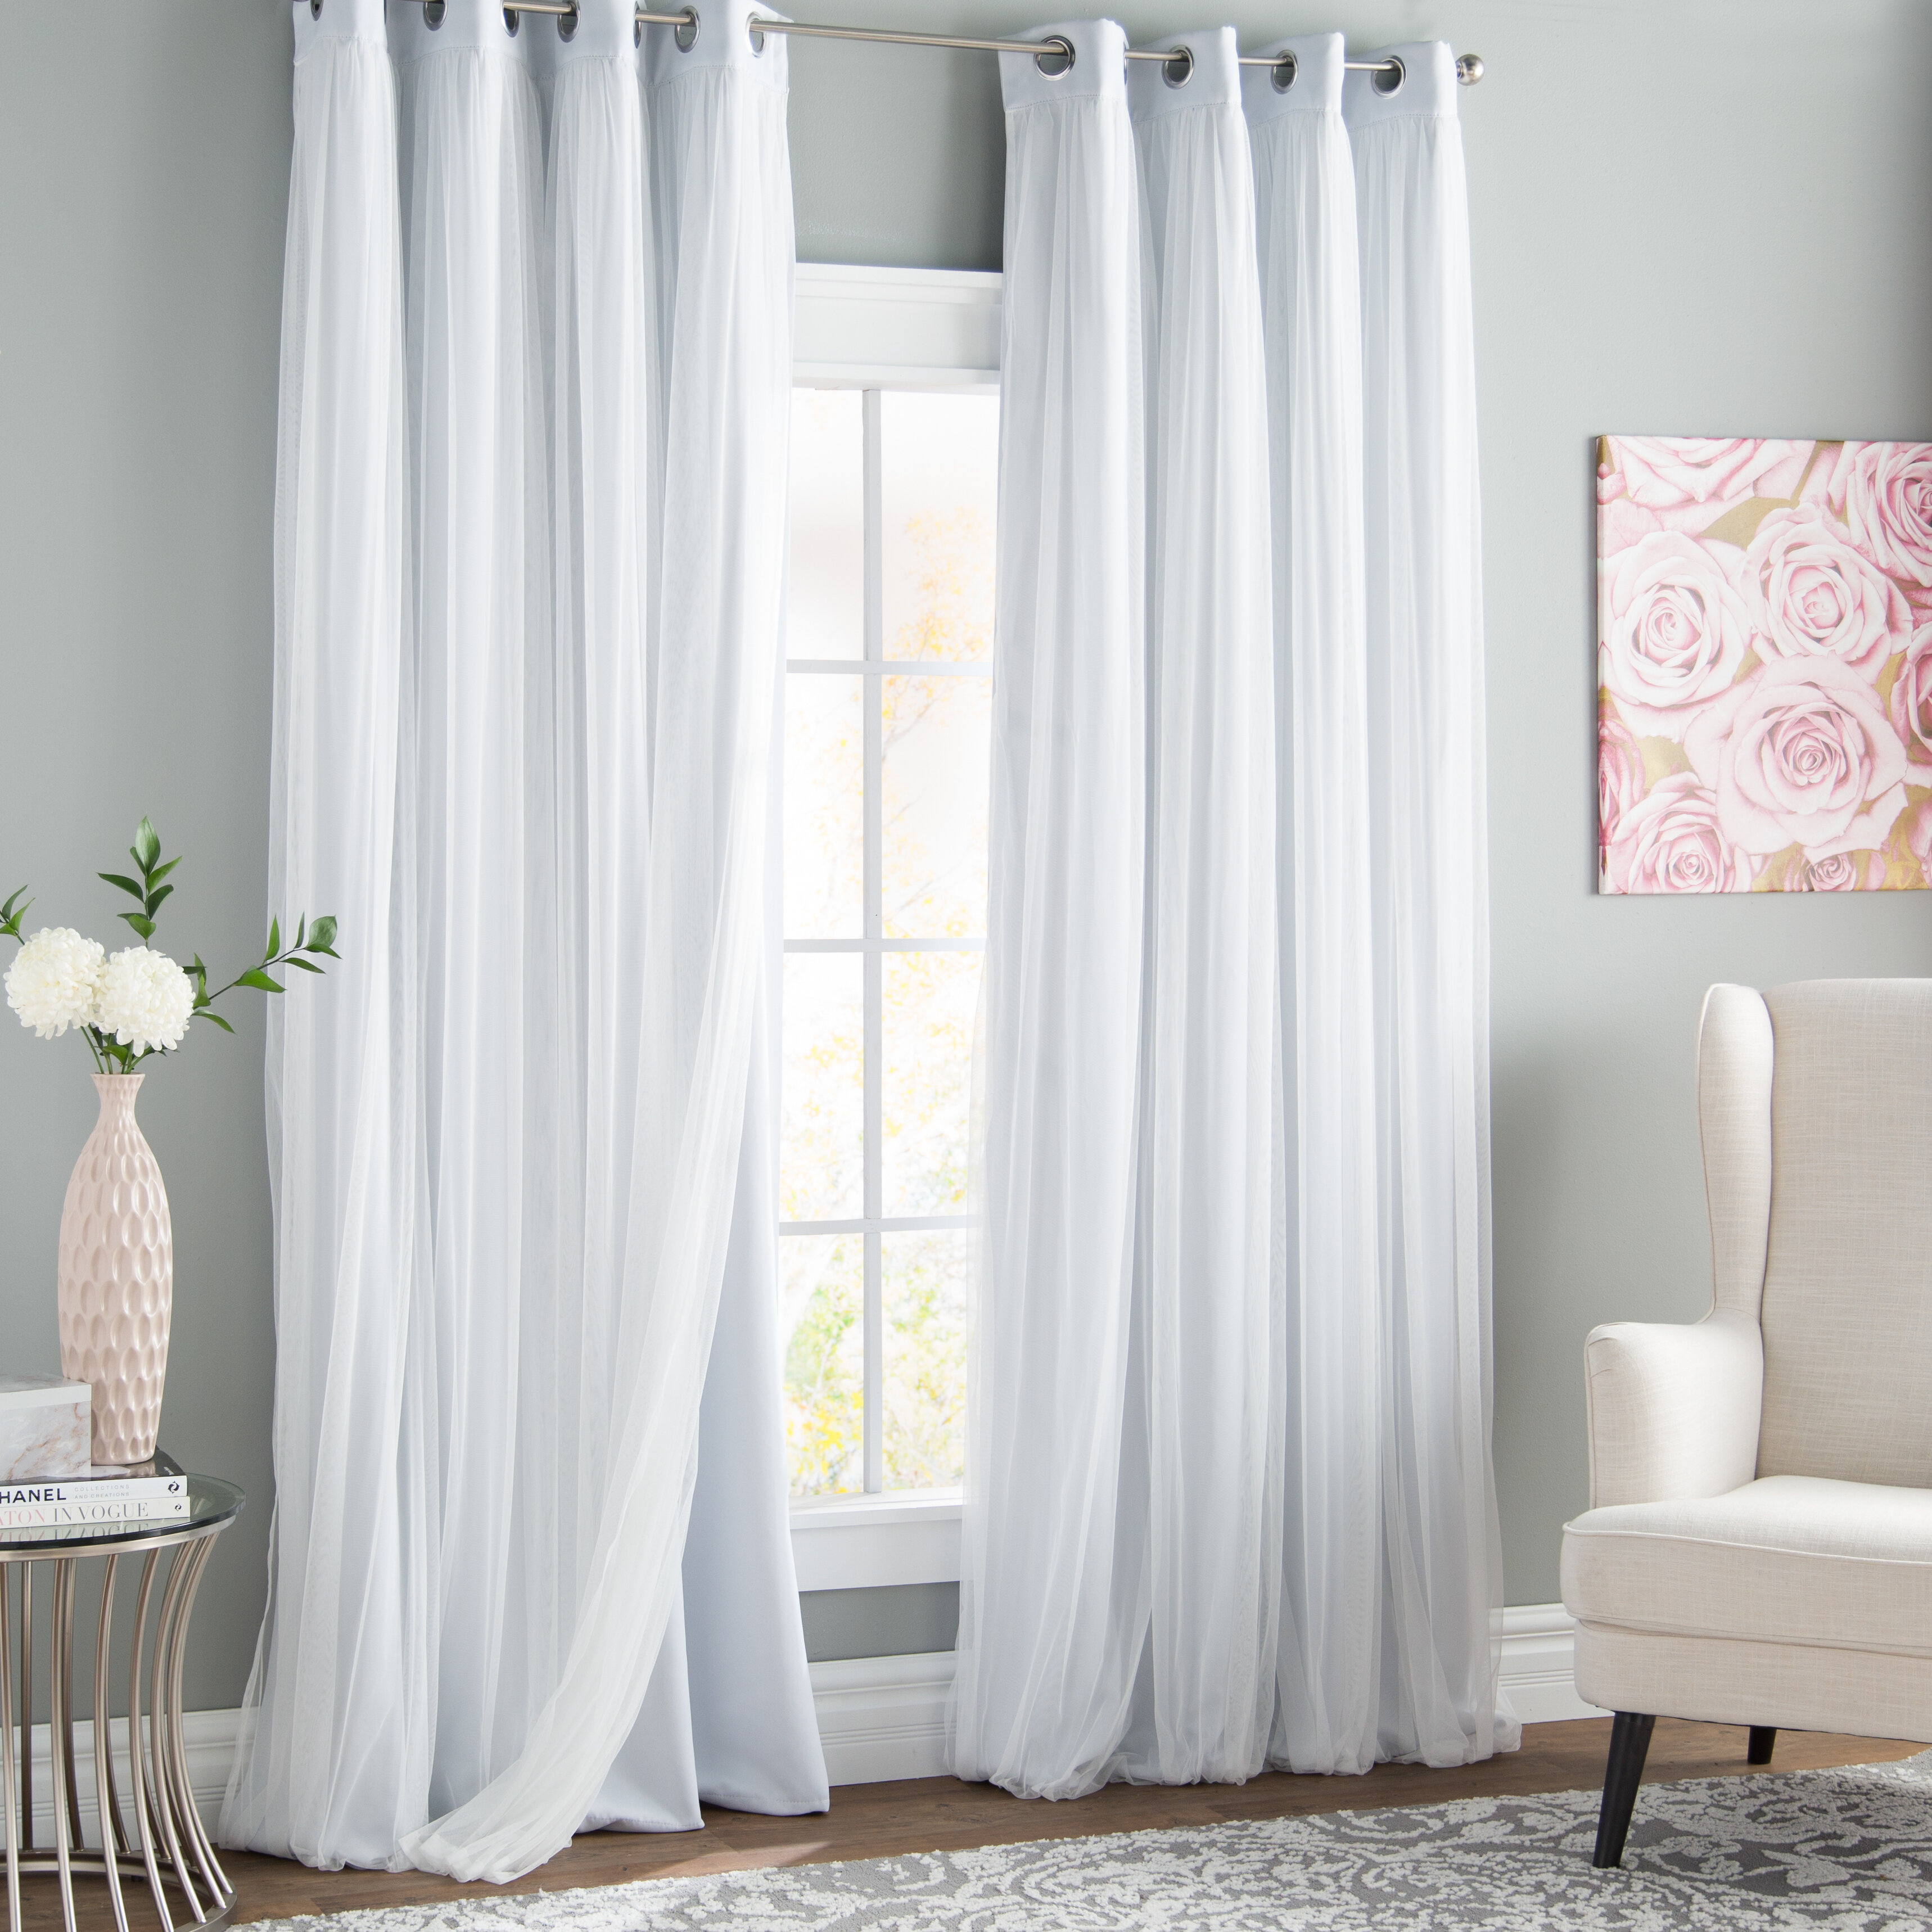 drape qyksee blue short embroidered linen window alibaba and light natural curtain sheer precious get kid genuine cheap red eos curtains girl zq group room soulful solid pink floraldesign drapes pocket bedroom rod